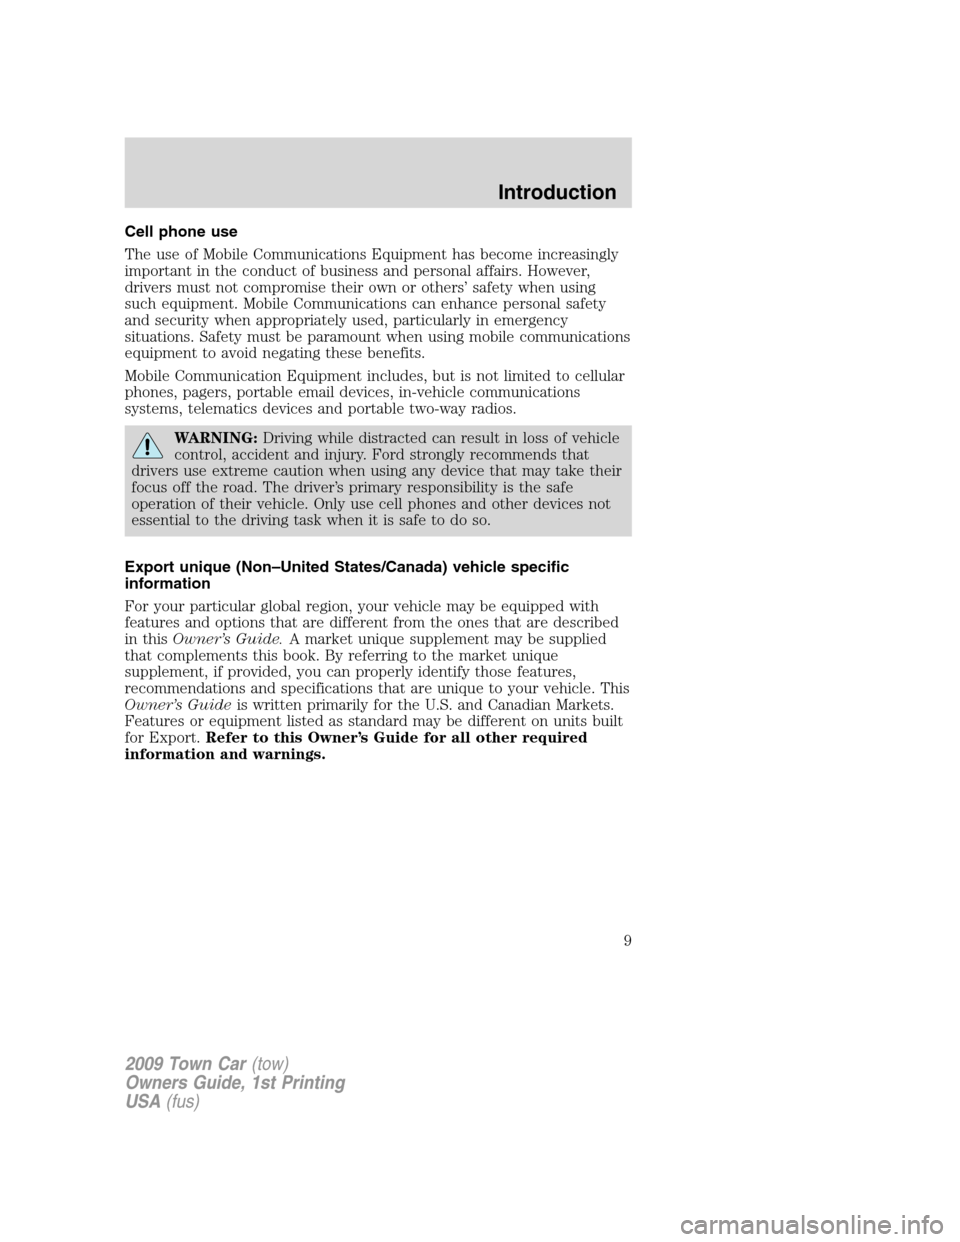 LINCOLN TOWN CAR 2009  Owners Manual, Page 9